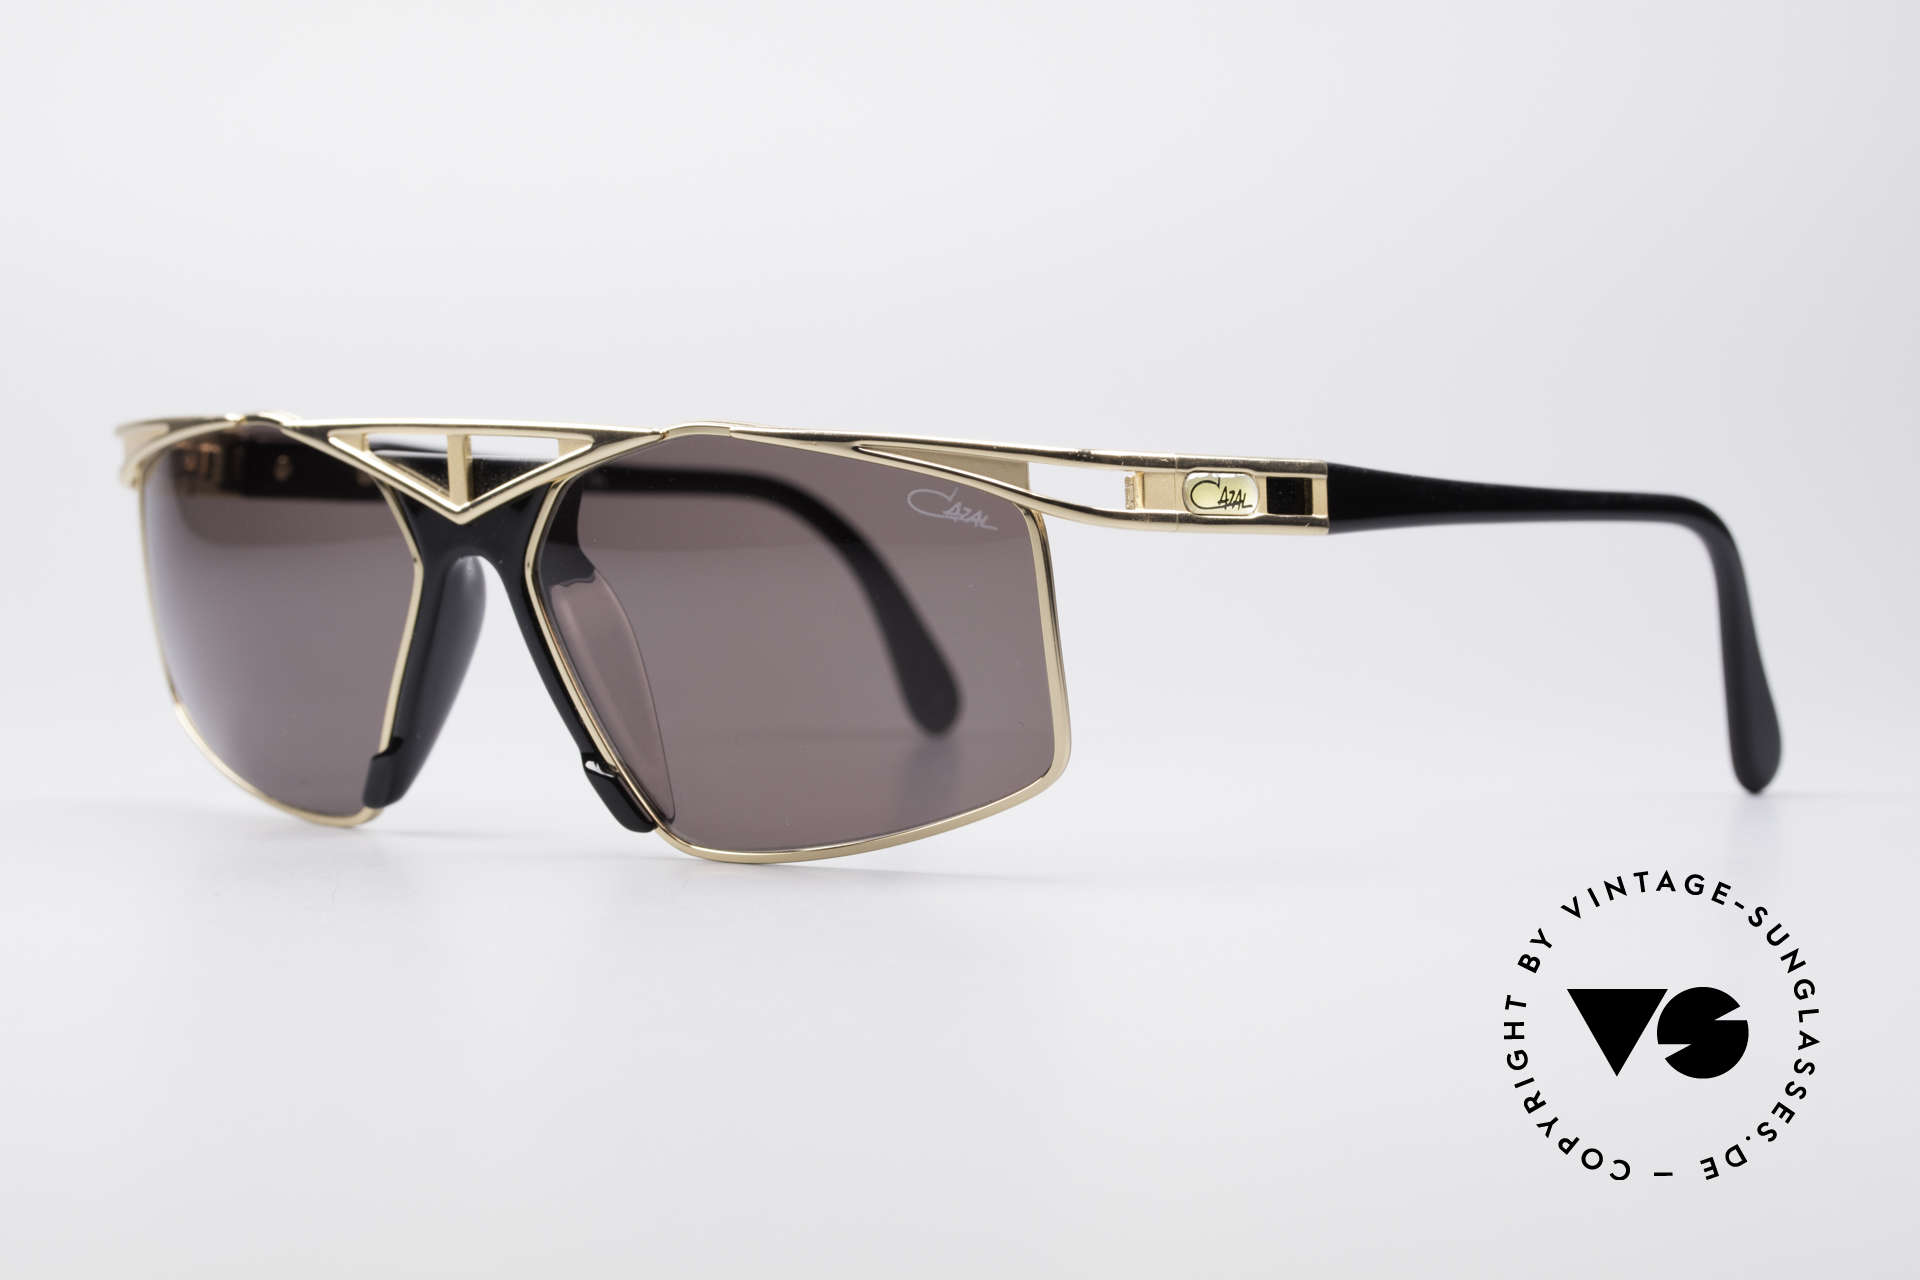 Cazal 962 Sporty Designer Shades, grand combination of color concept, design & materials, Made for Men and Women